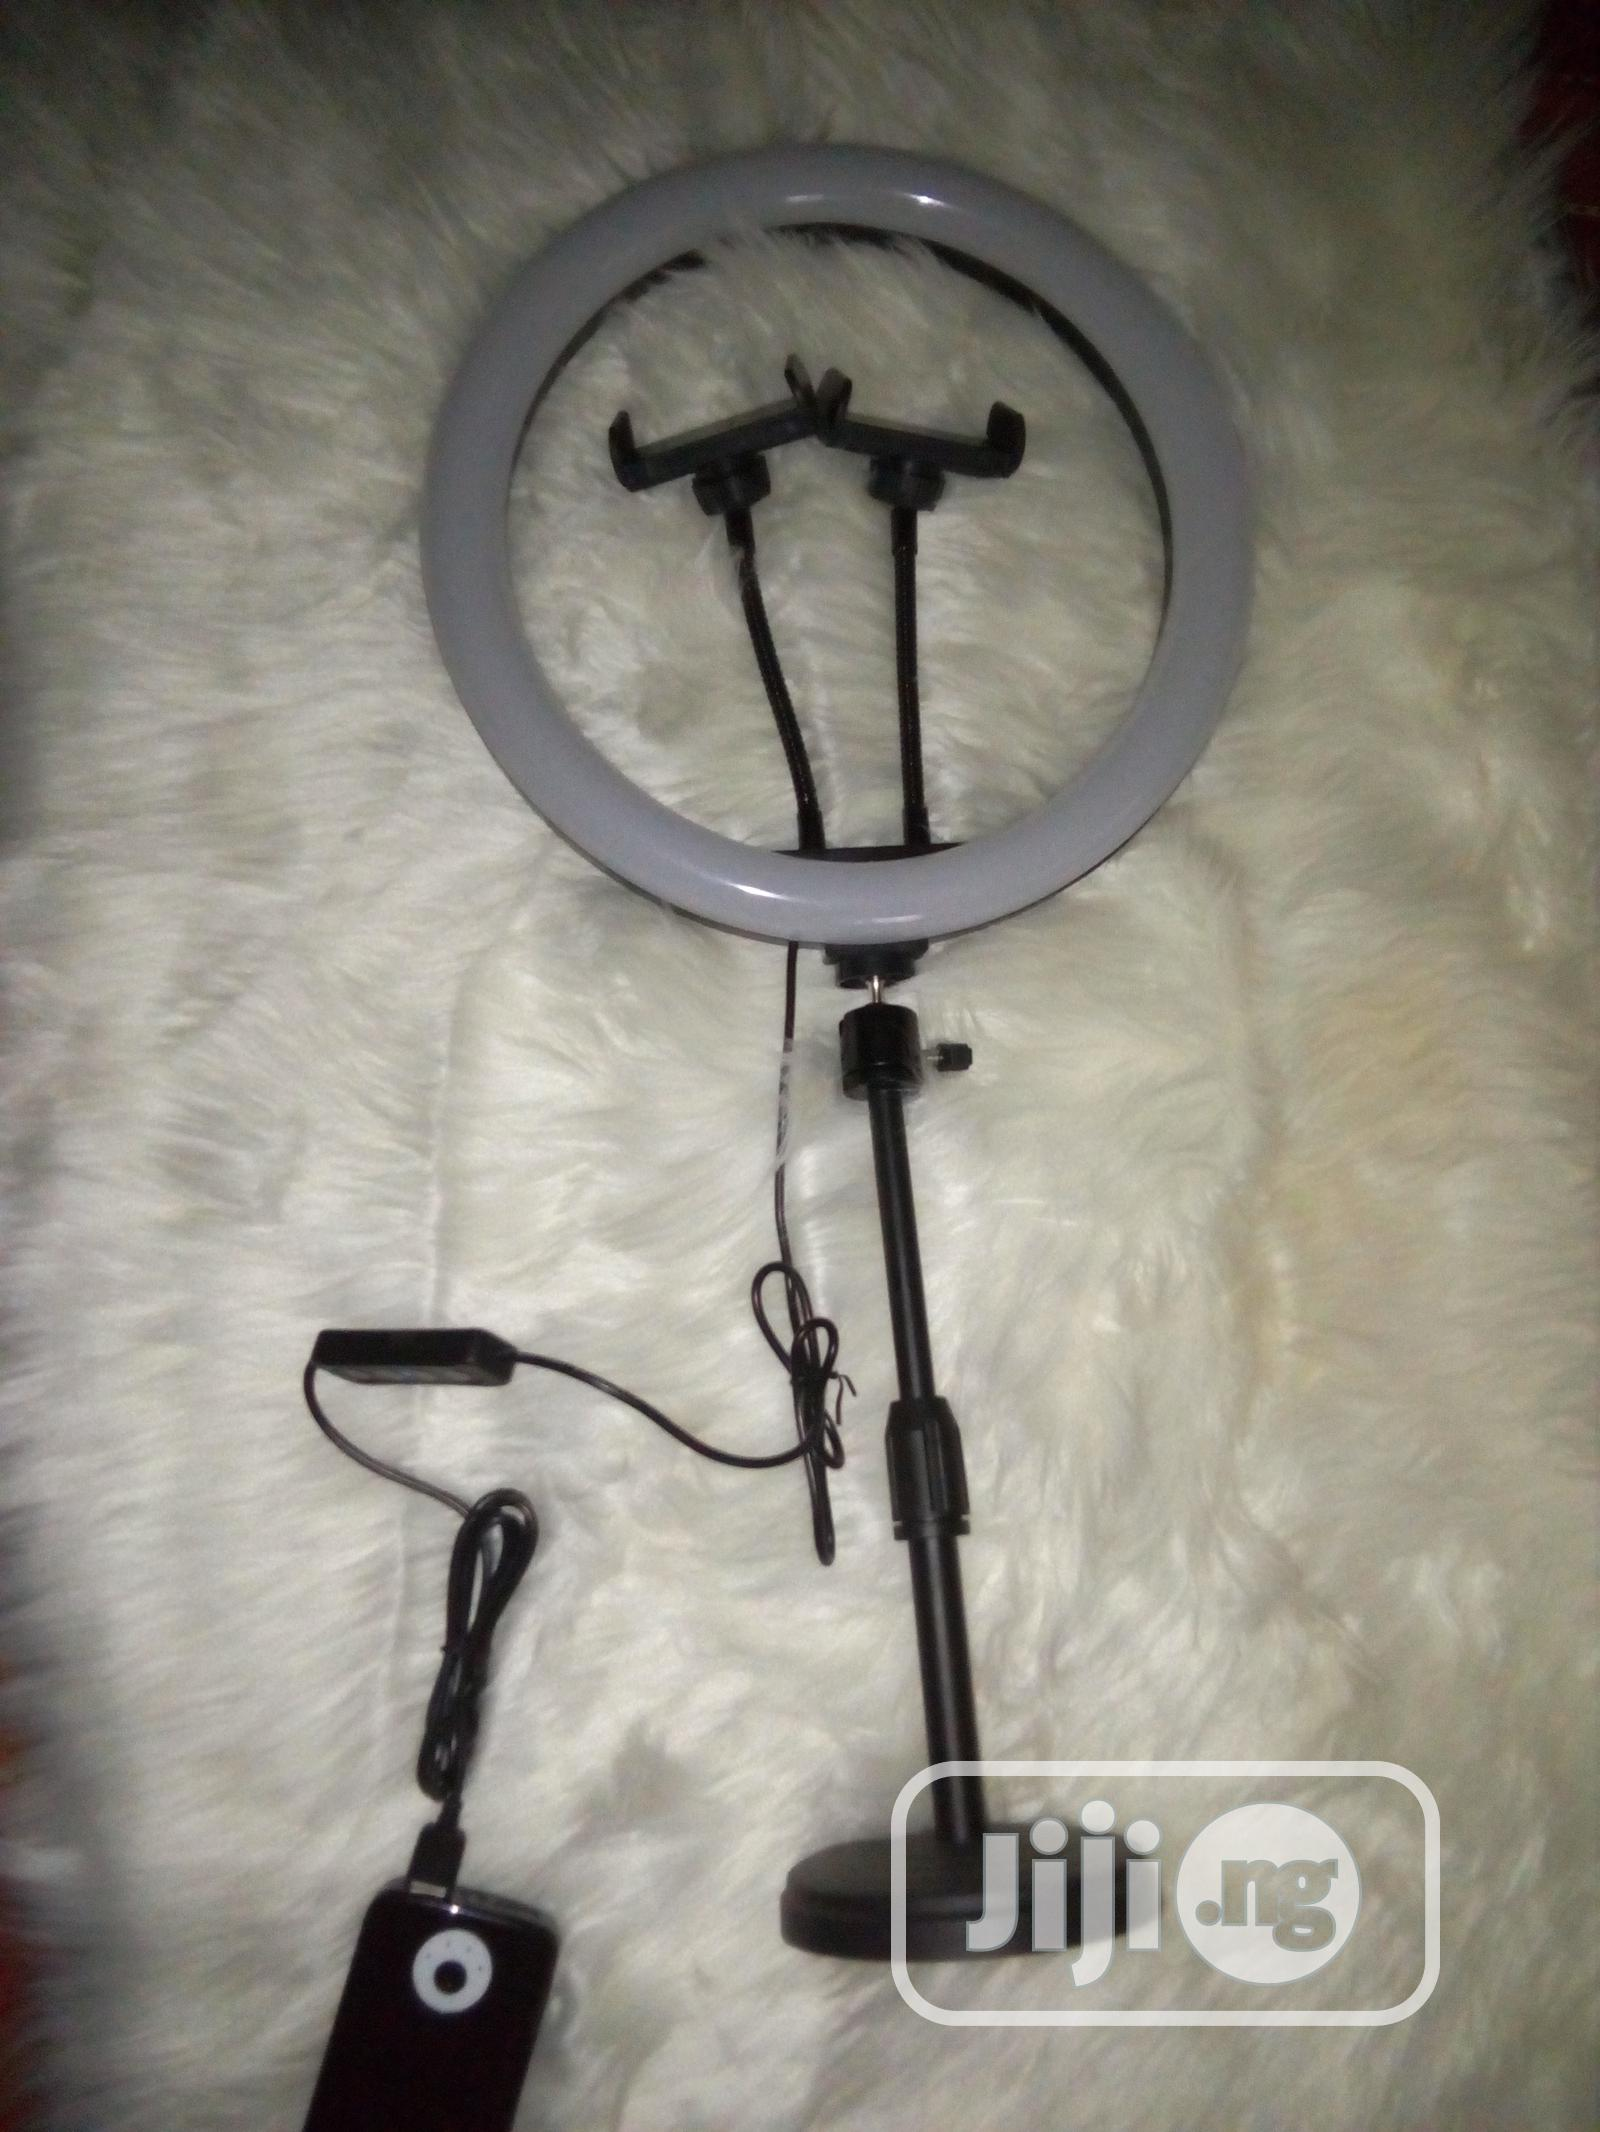 12 Inches Ringlight With Table Top Tripod and 2 Phone Holder